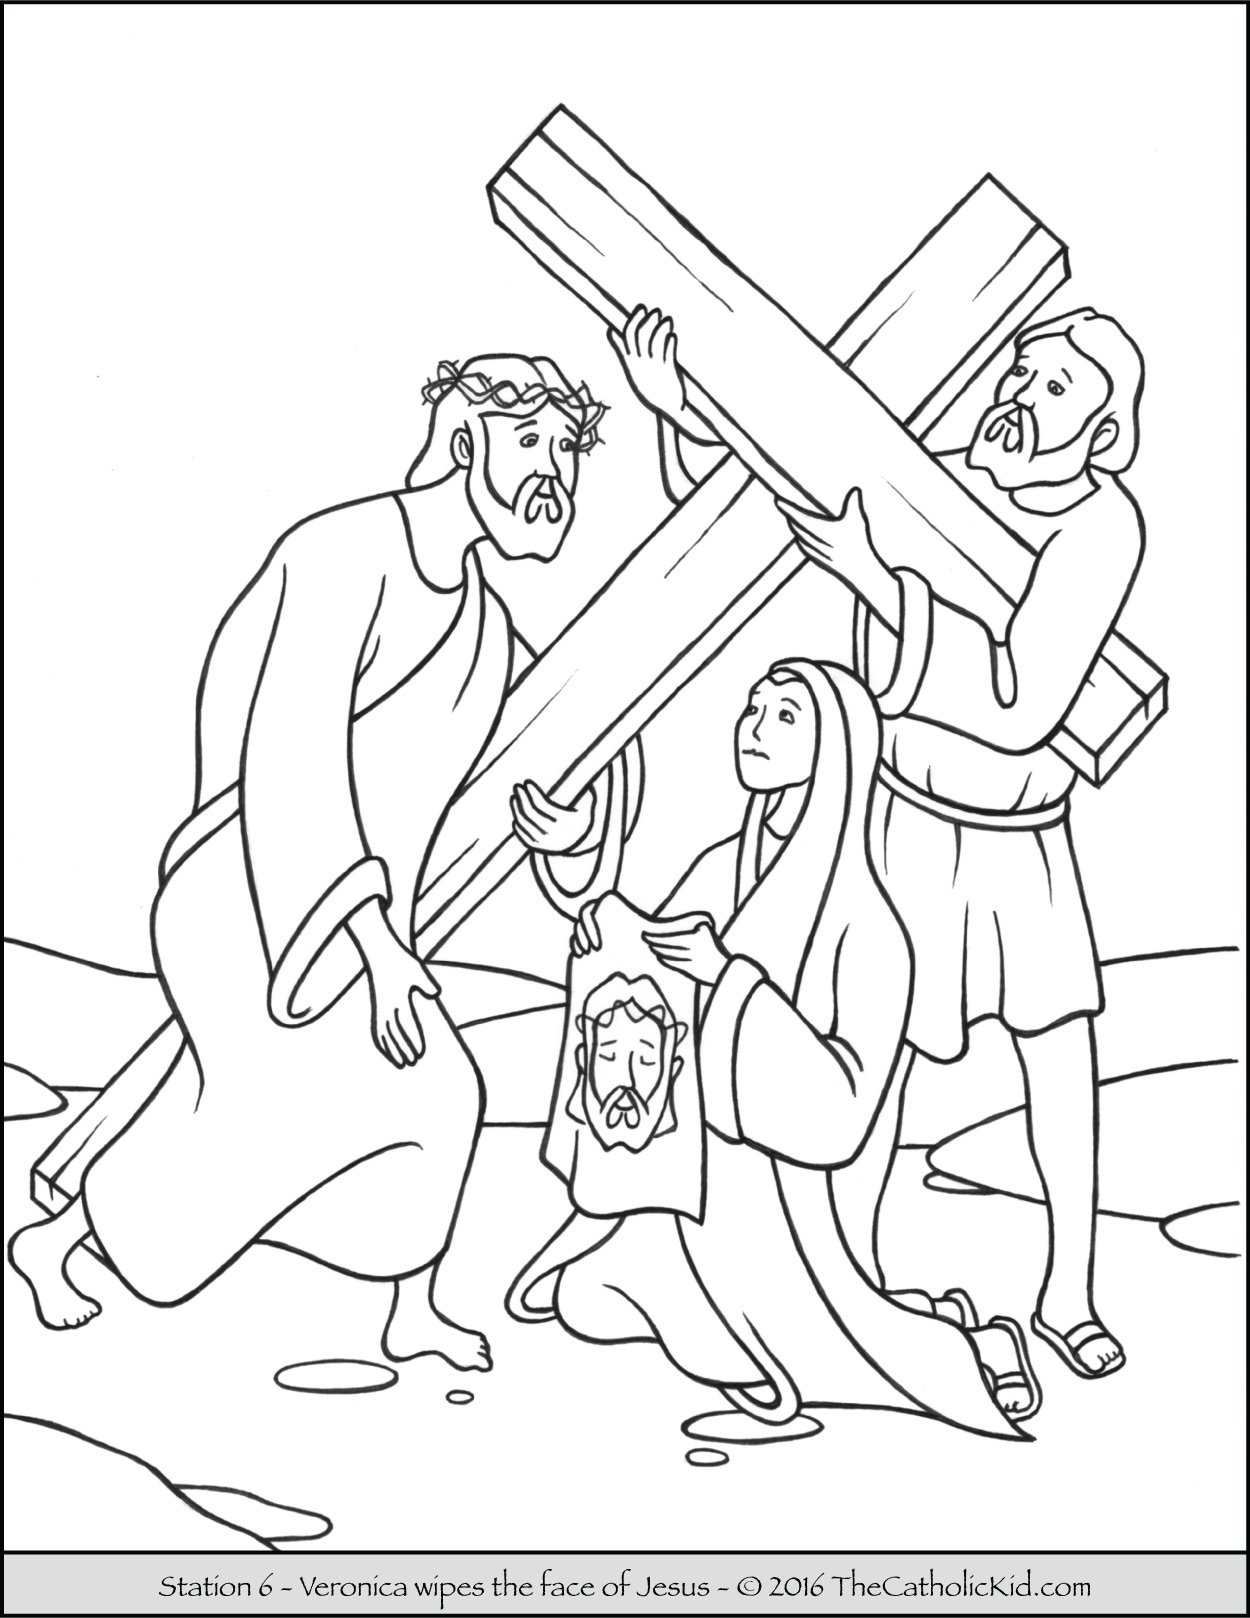 Stations Of The Cross Coloring Pages Glamorous Stations Of The Cross Coloring Pages  The Catholic Kid Design Ideas